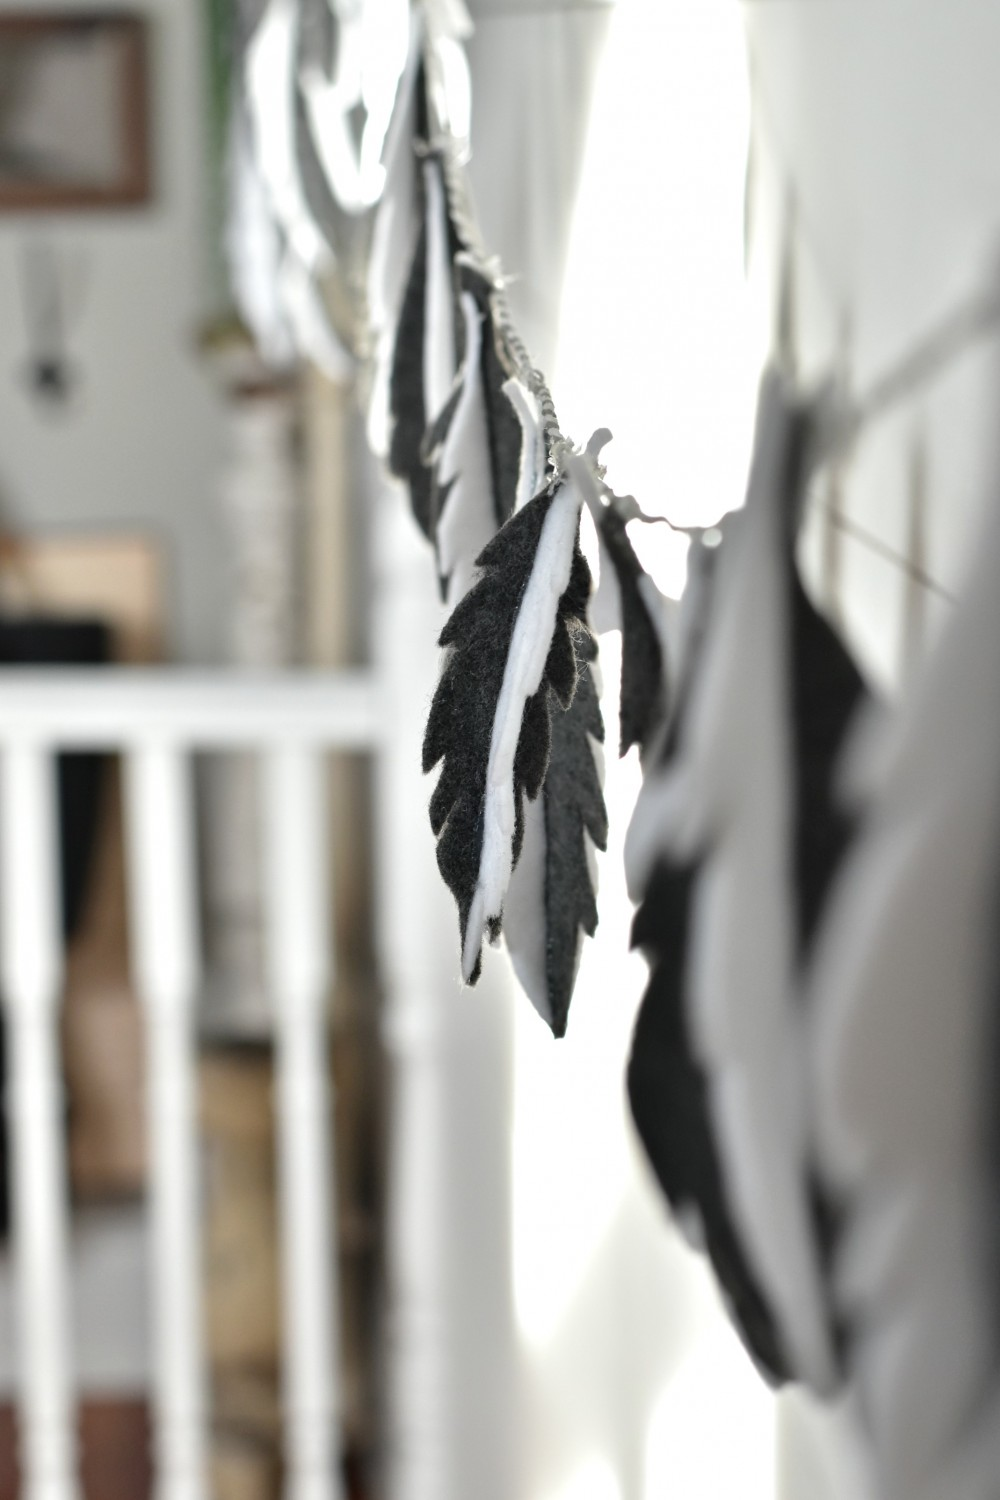 Felt-Feather-Garland-In-Studio | Vin'yet Etc.